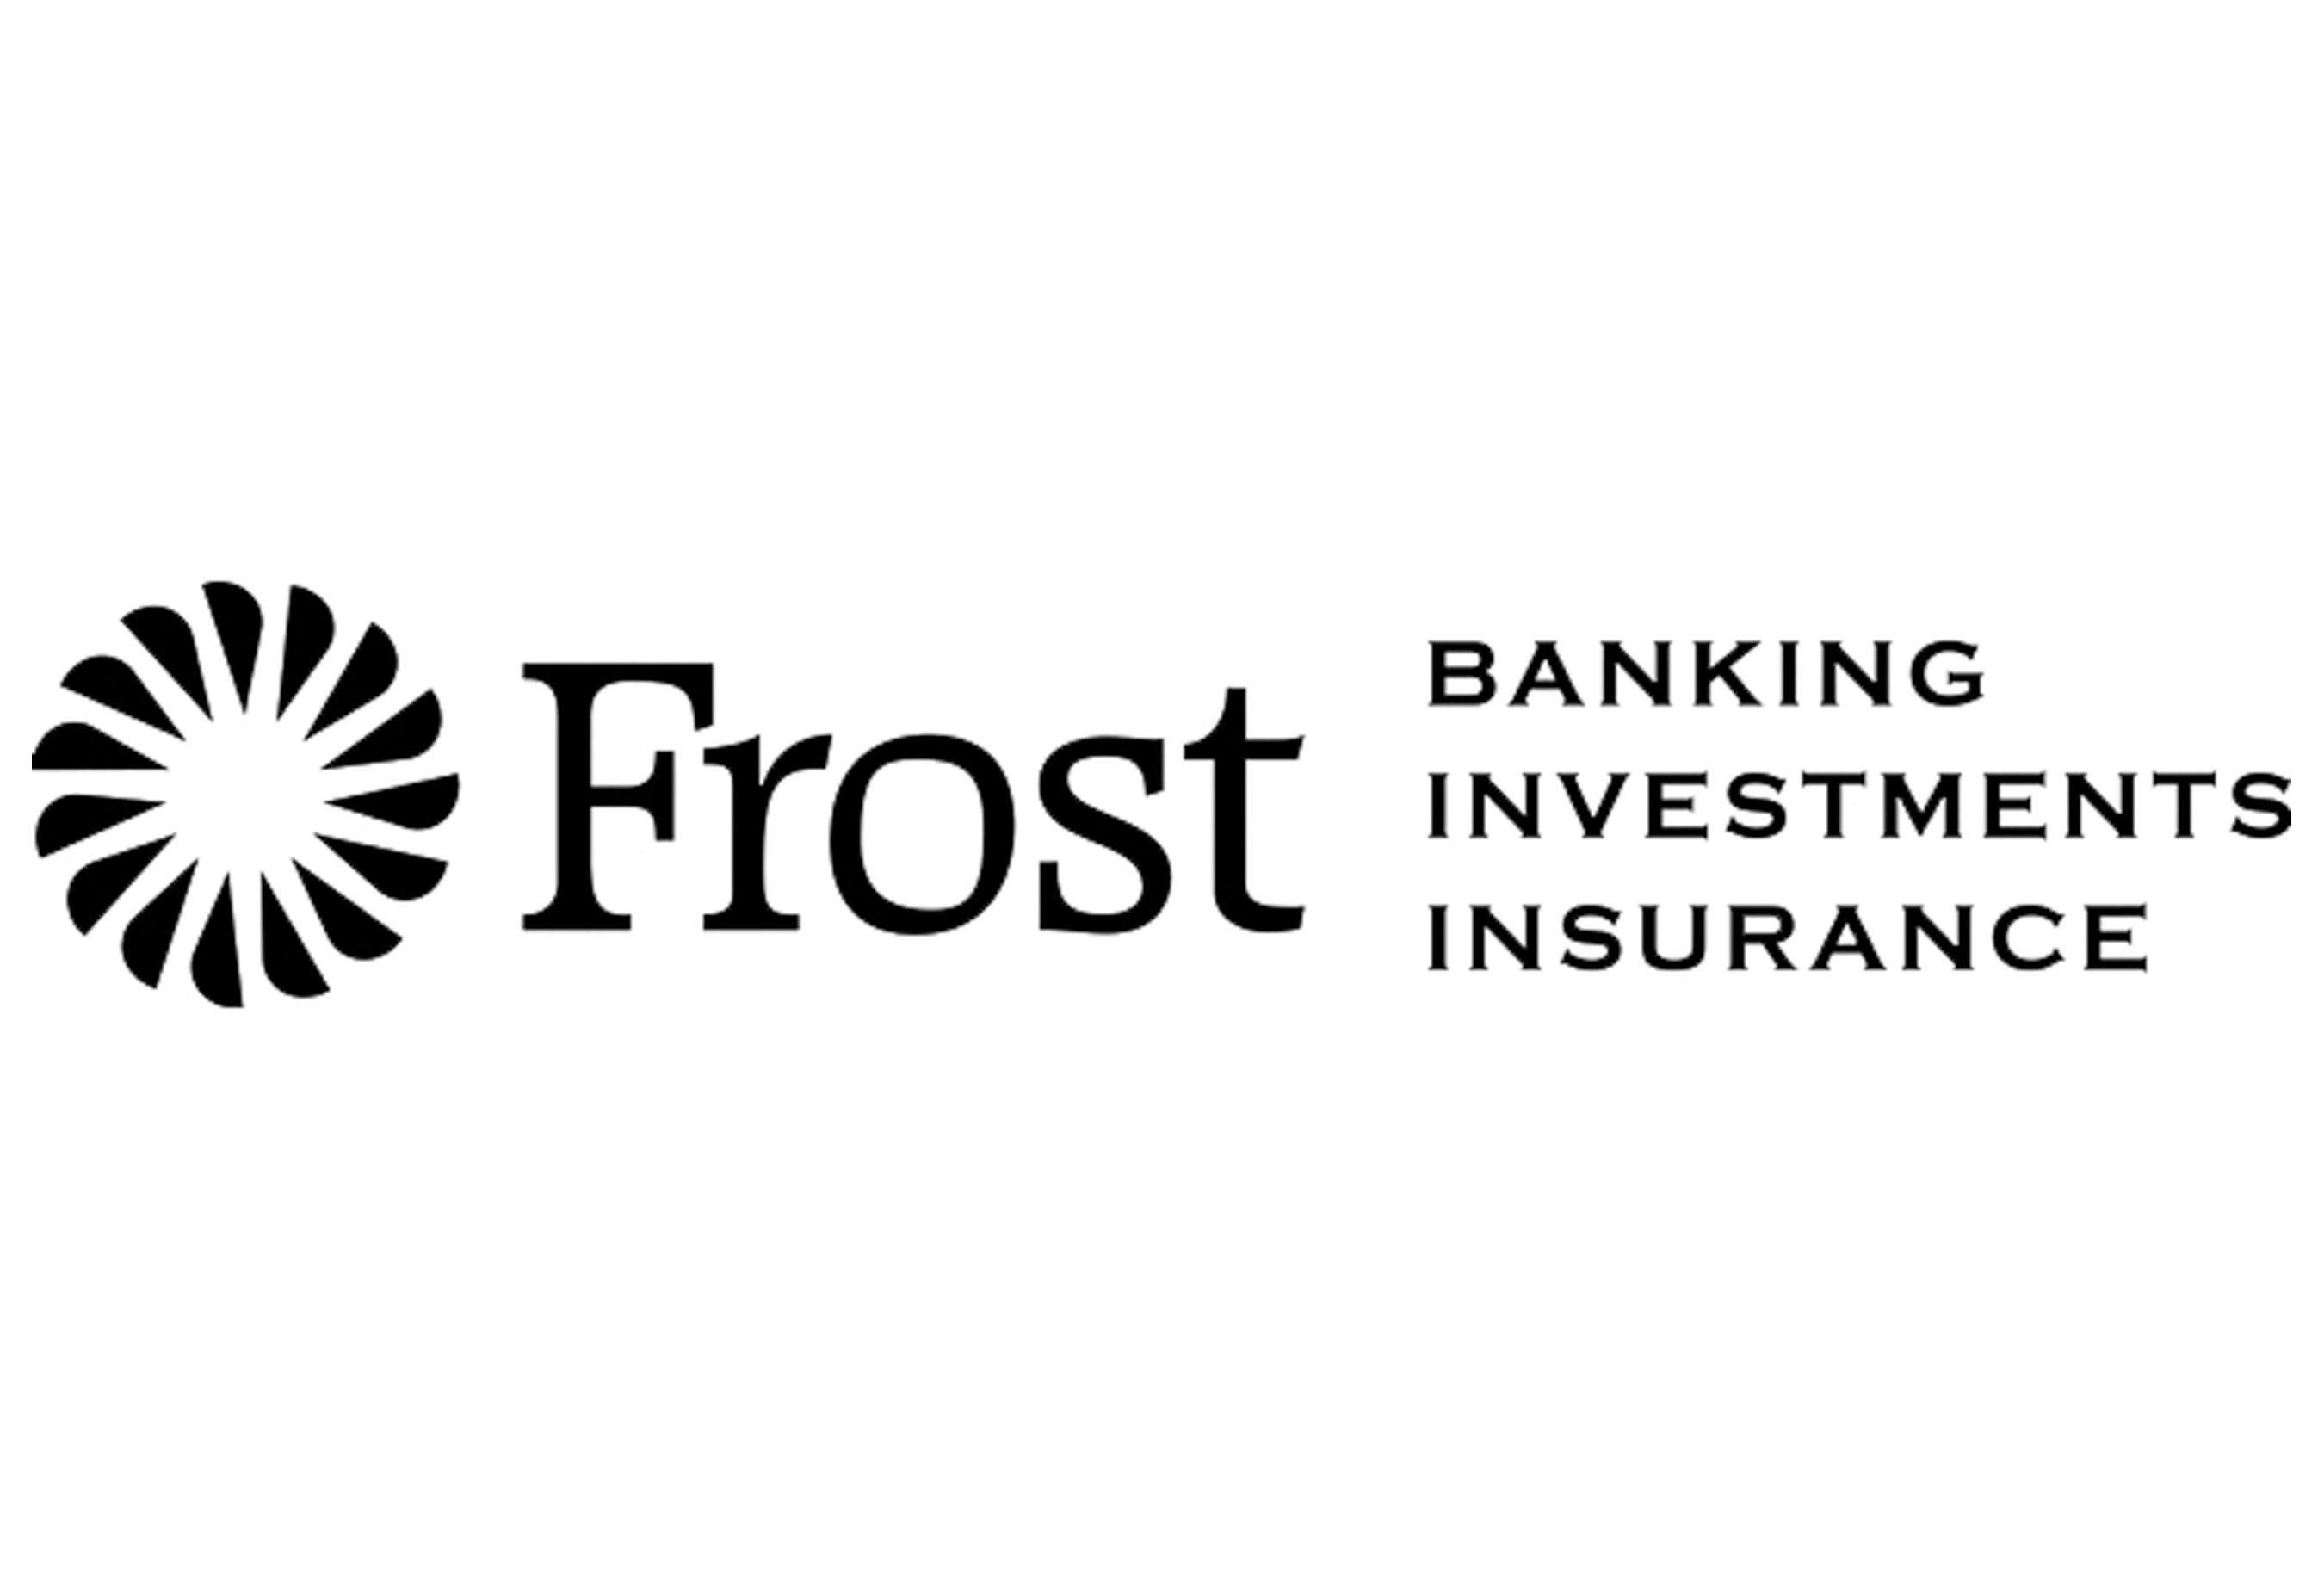 View details for routing number - 114921499 - assigned to FROST BANK-CORPUS CHRISTI in SAN ANTONIO,